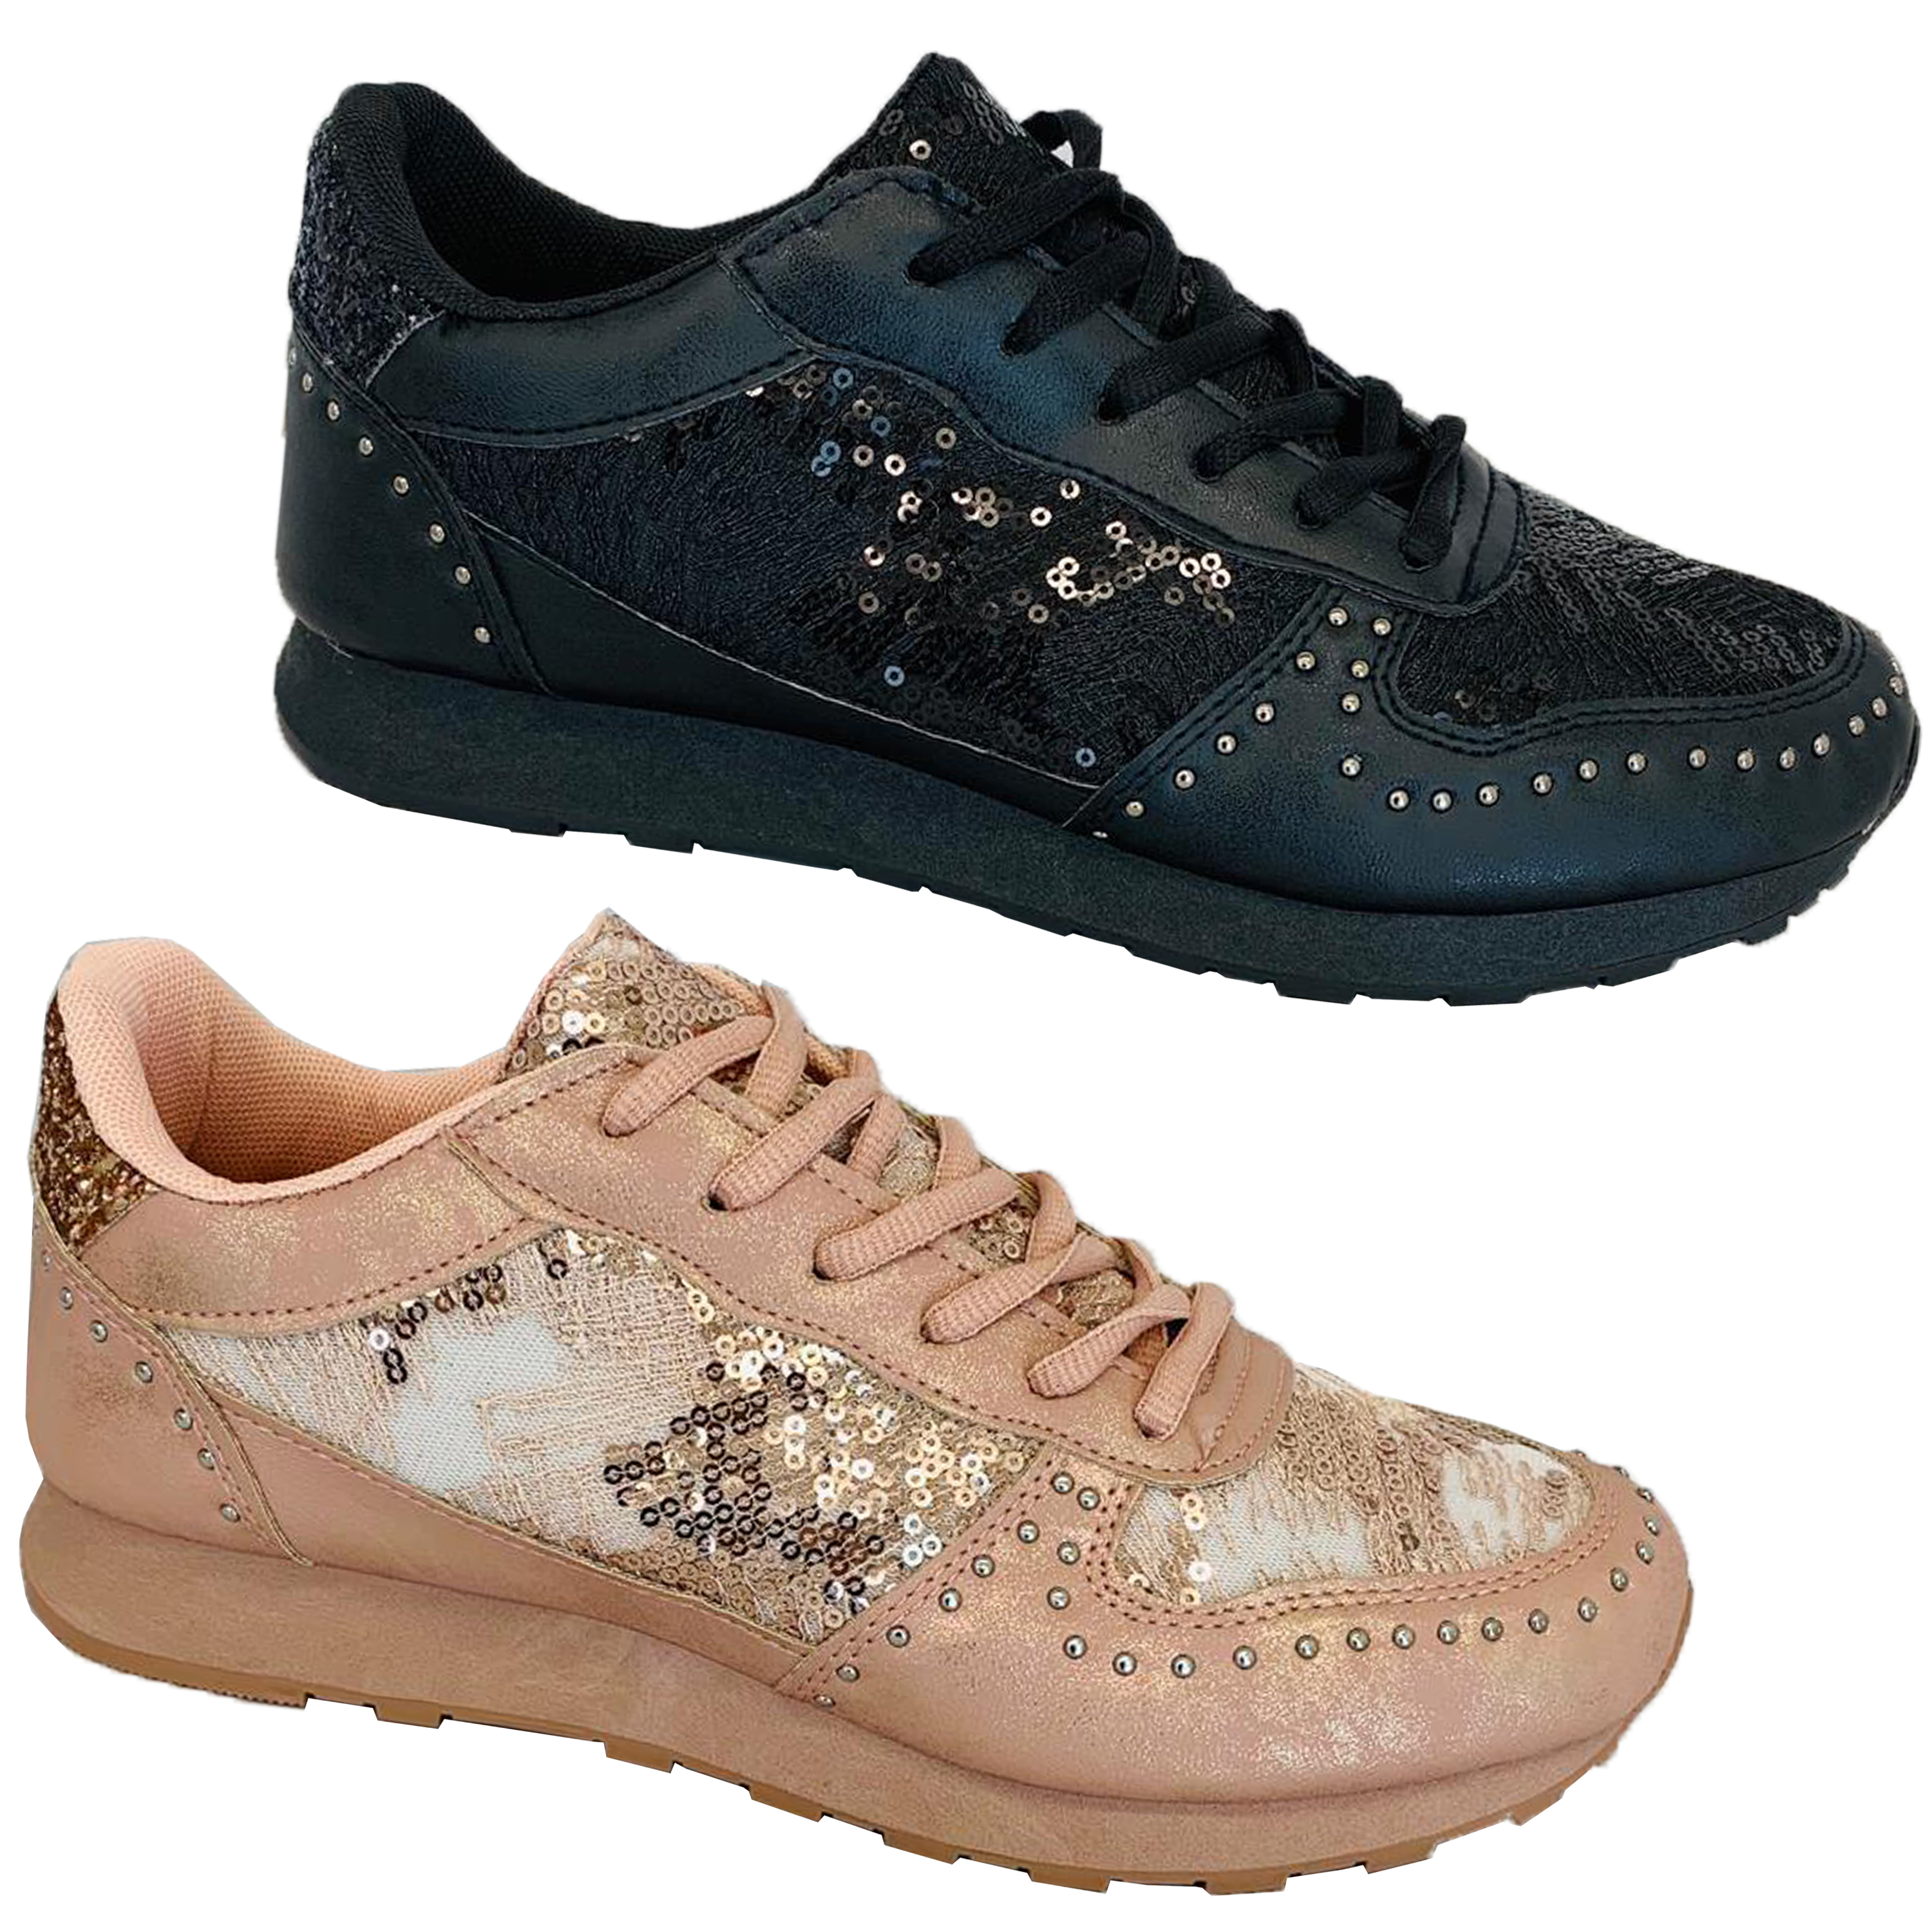 Ladies Trainers Womens Lace Up Sequin Studs Running Gym Fashion Sneaker Shoes